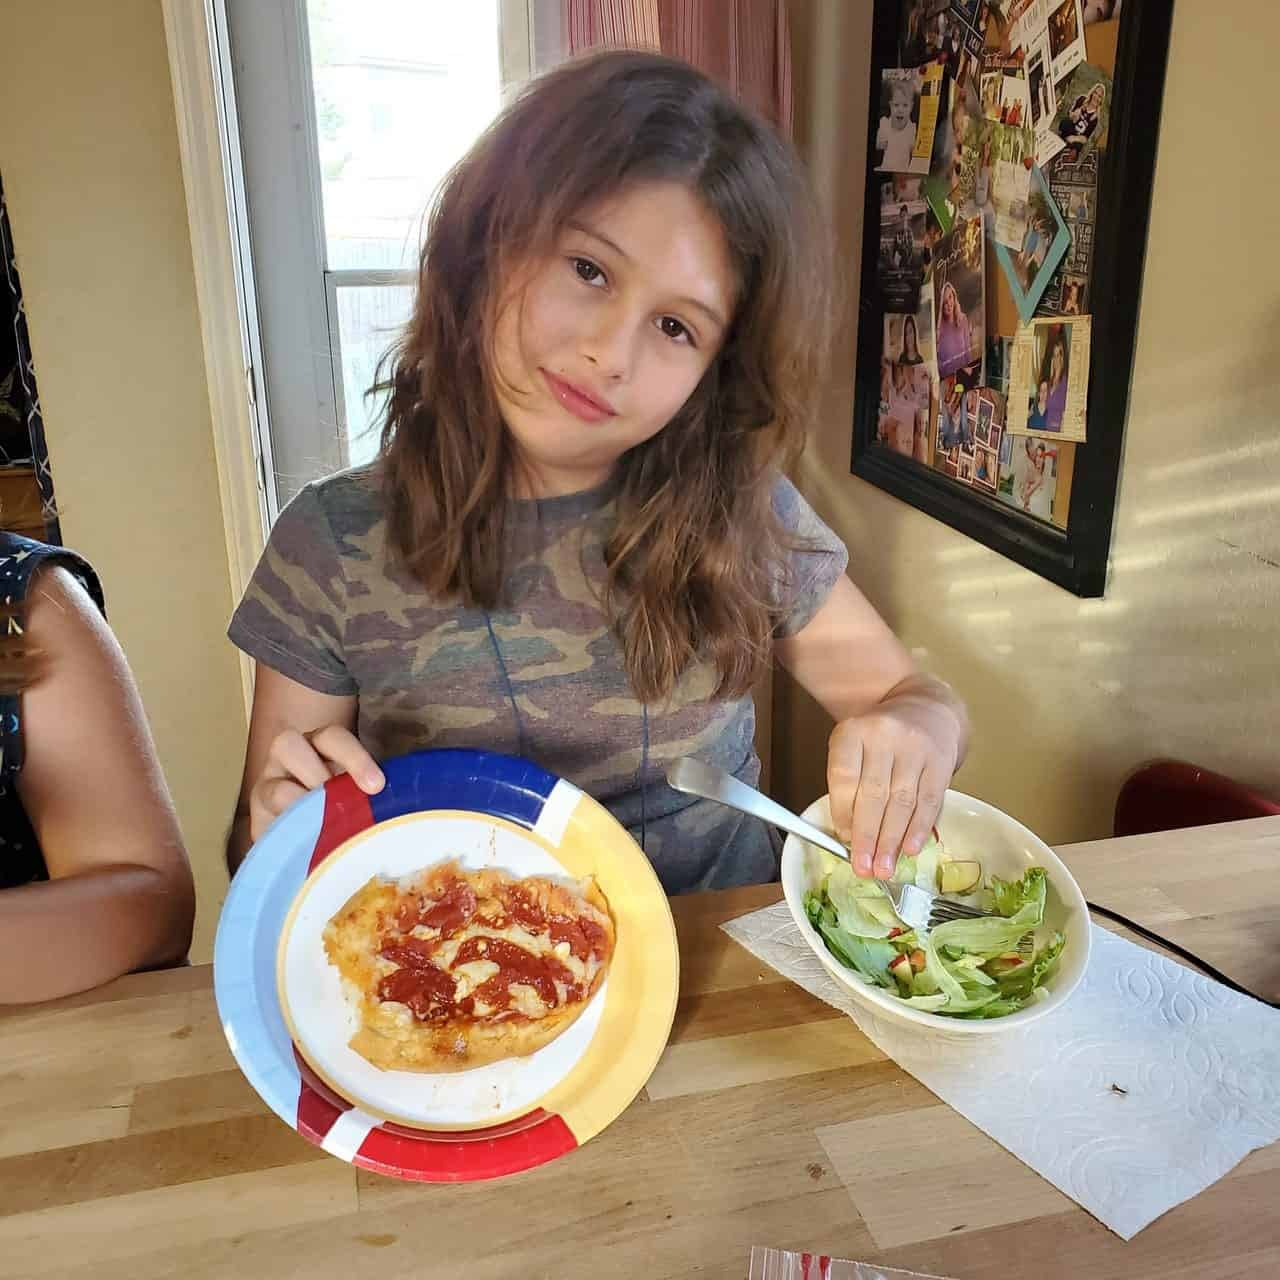 Mckayla showing her pizza creation scaled